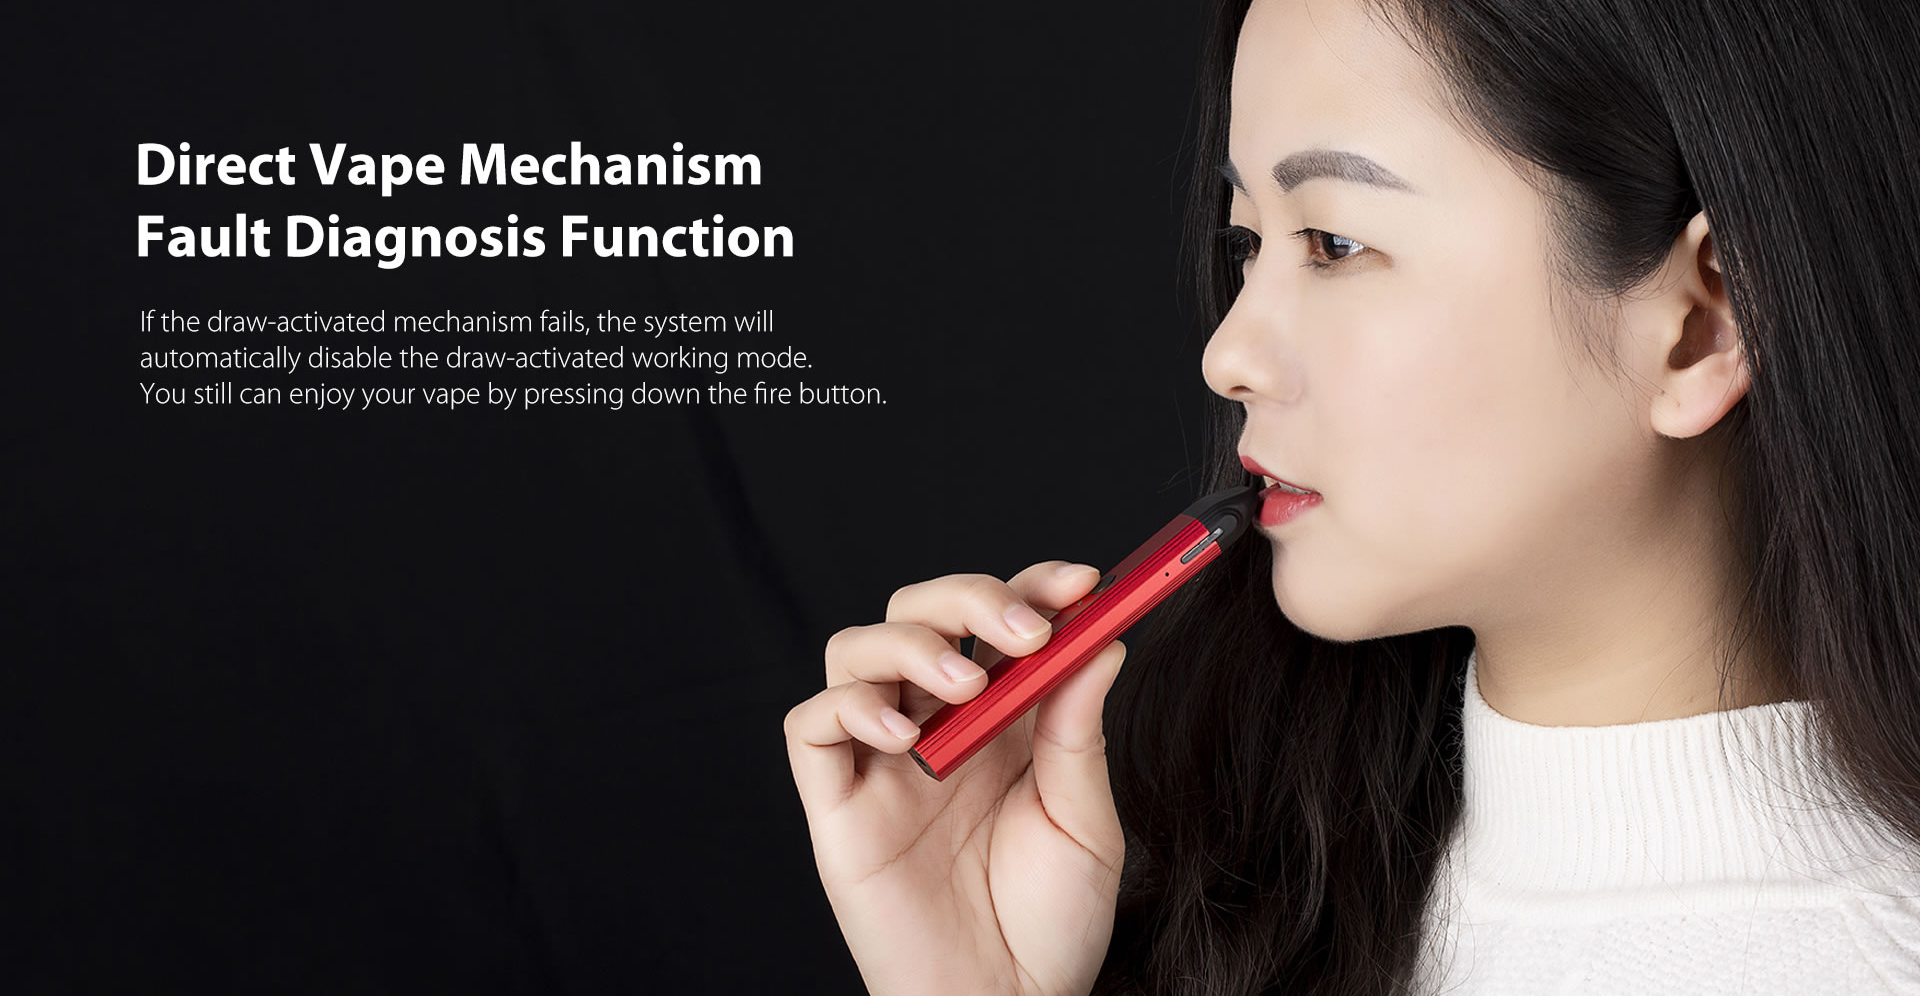 Uwell Caliburn Portable Pod System Direct Vape Mechanism